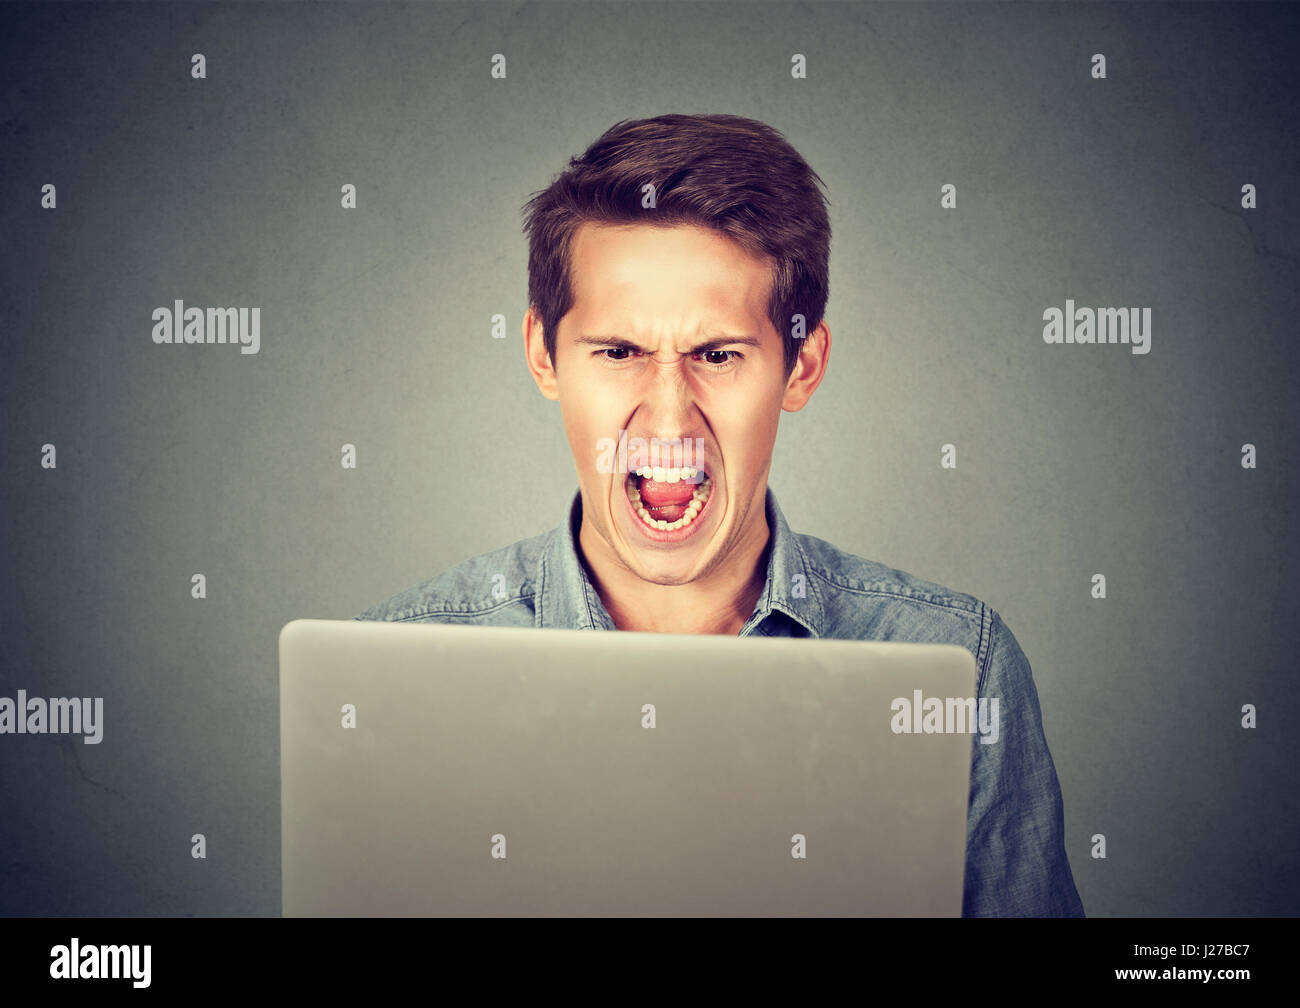 aggression as a negative There are numerous behaviors that can be classed as negative depending on the situation and activity, including lack of initiative, being irresponsible, aggression and playing the victim these negative behaviors can apply to work, learning habits or even dealing with things like addiction negative .